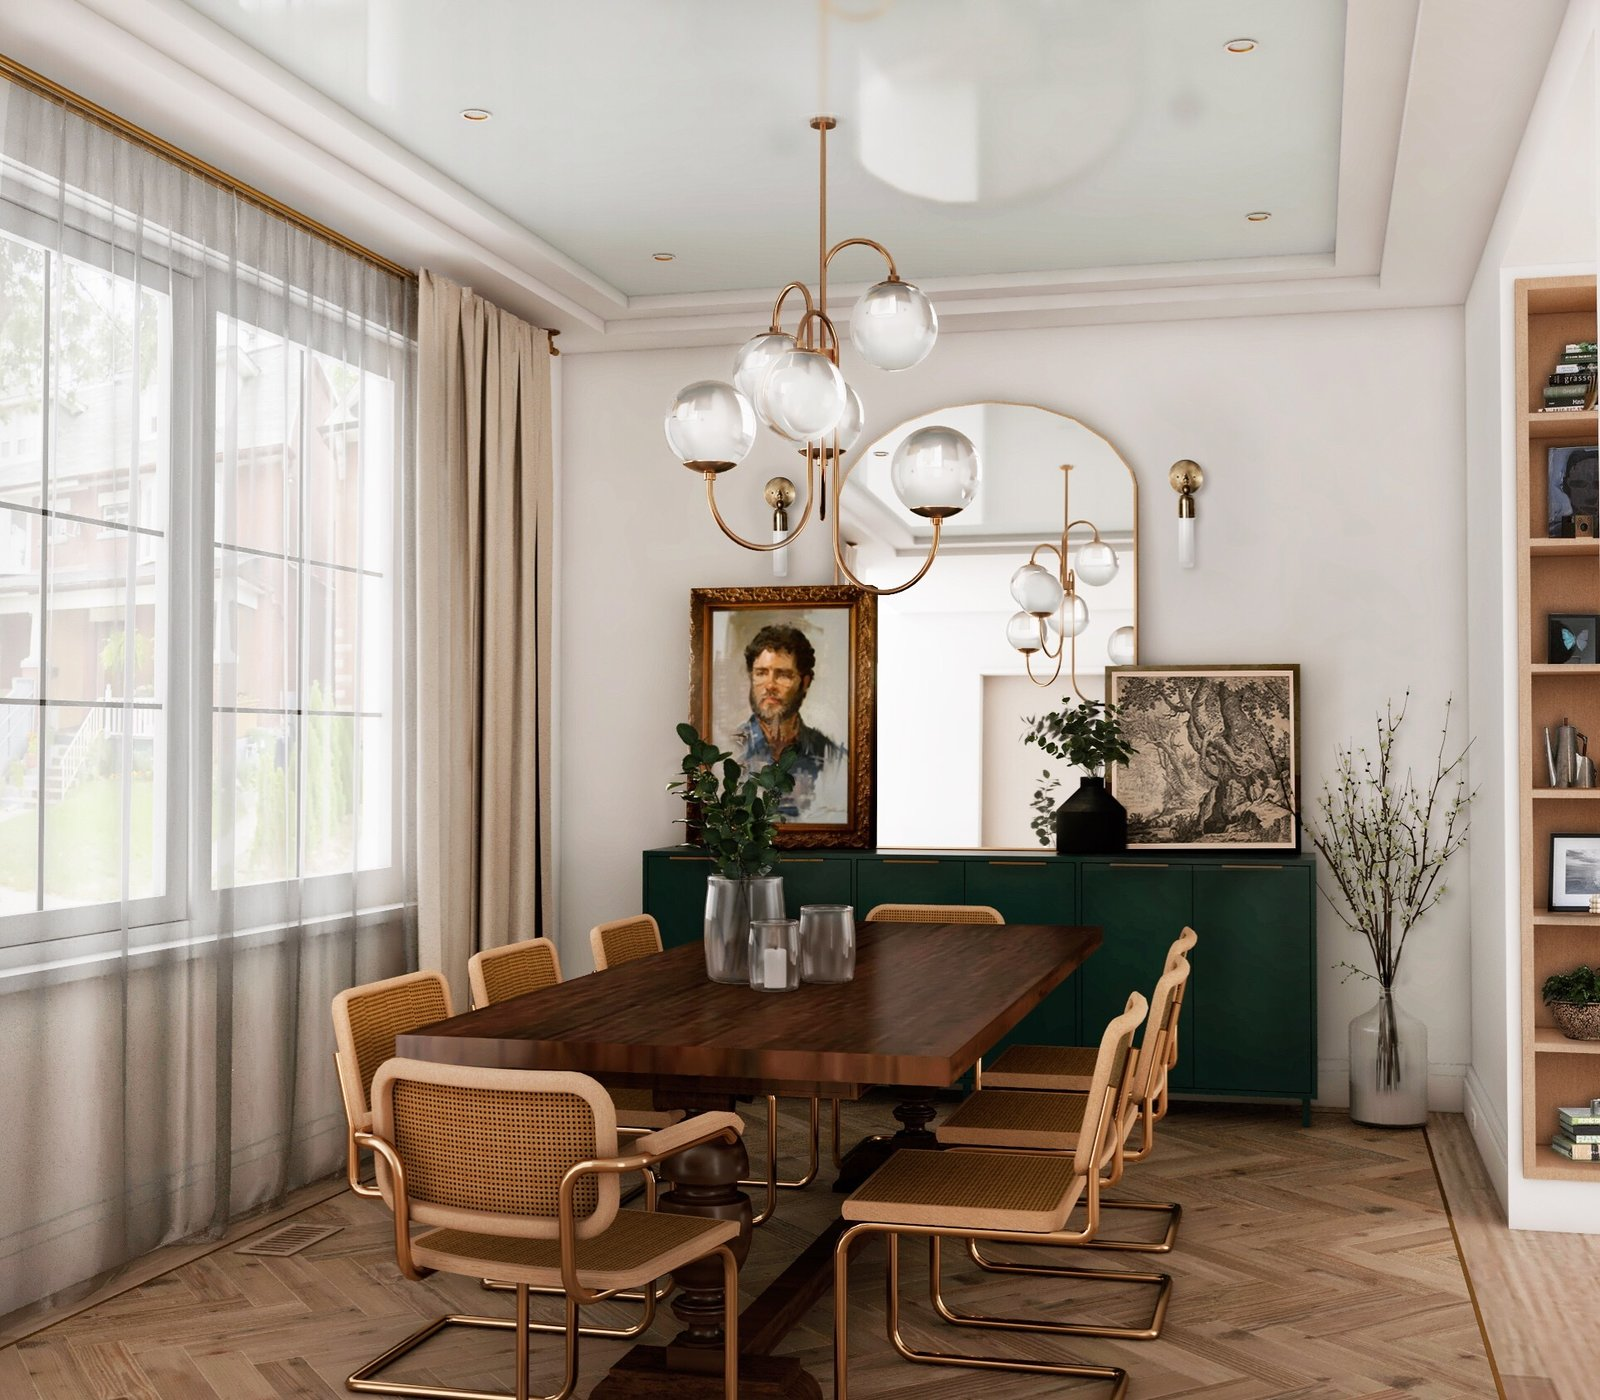 Reimagined Edwardian dining room